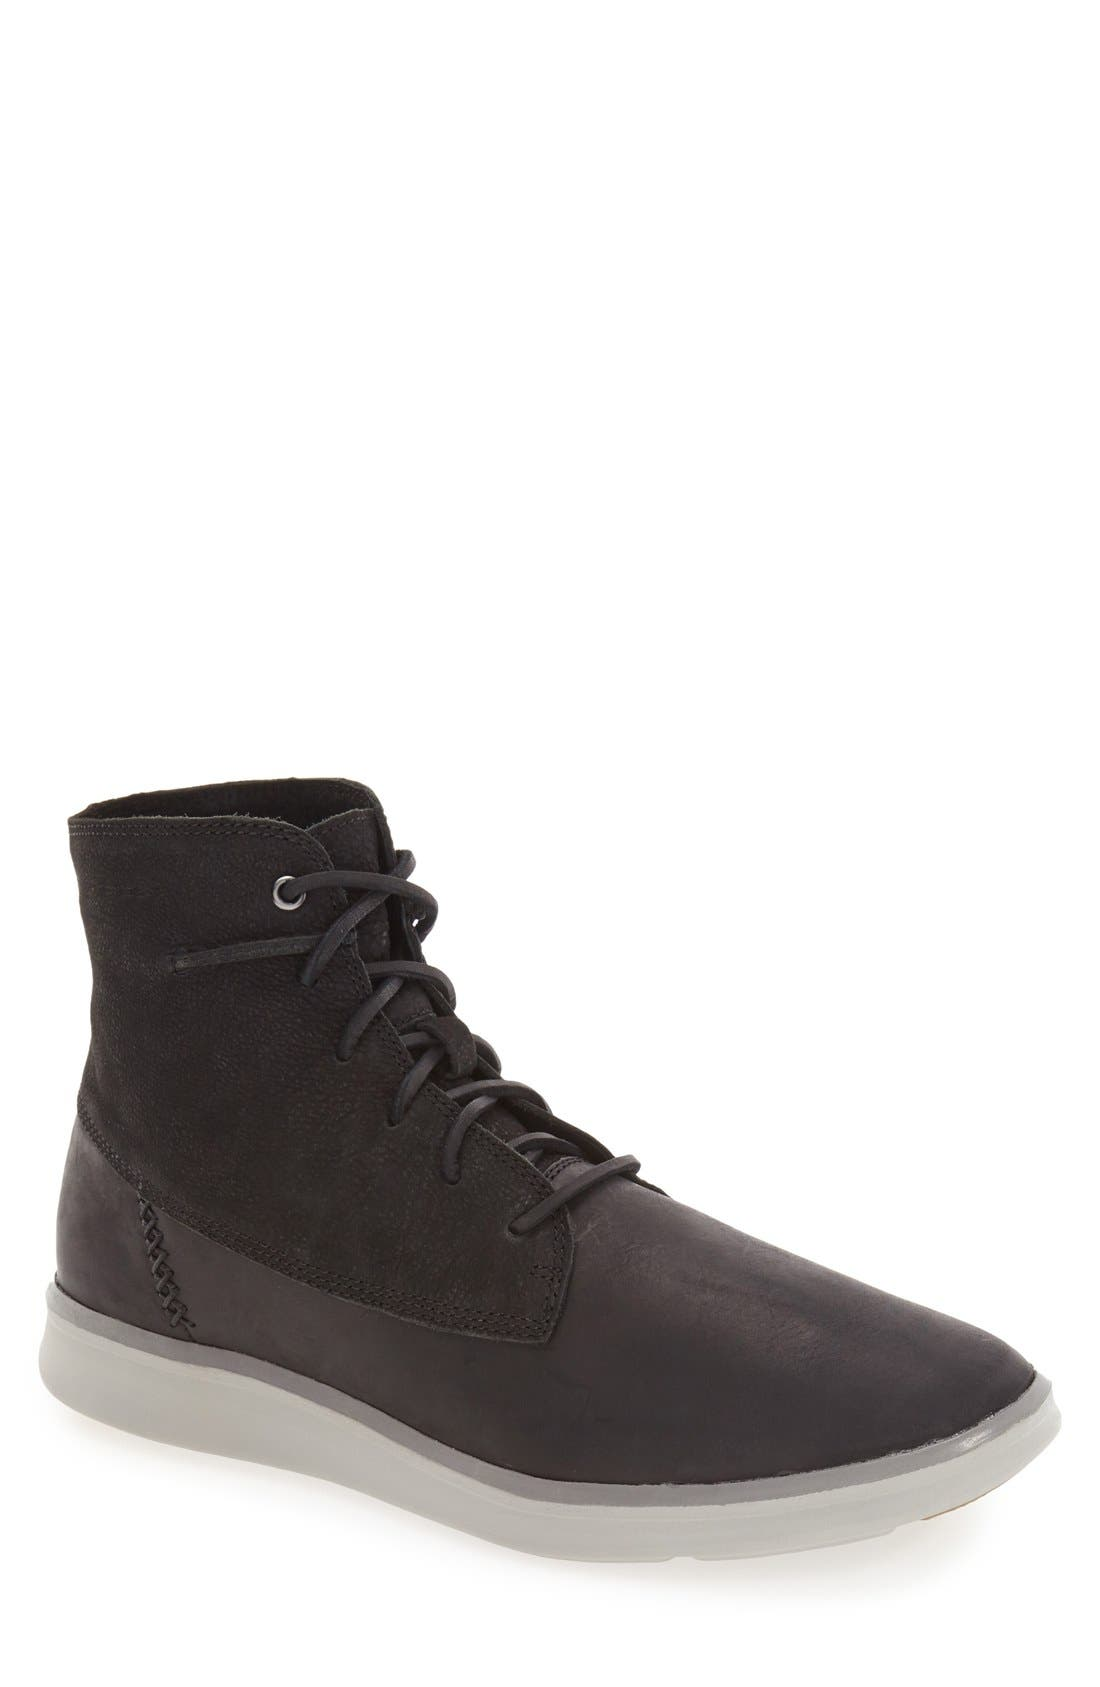 Alternate Image 1 Selected - UGG® 'Lamont' High Top Sneaker (Men)